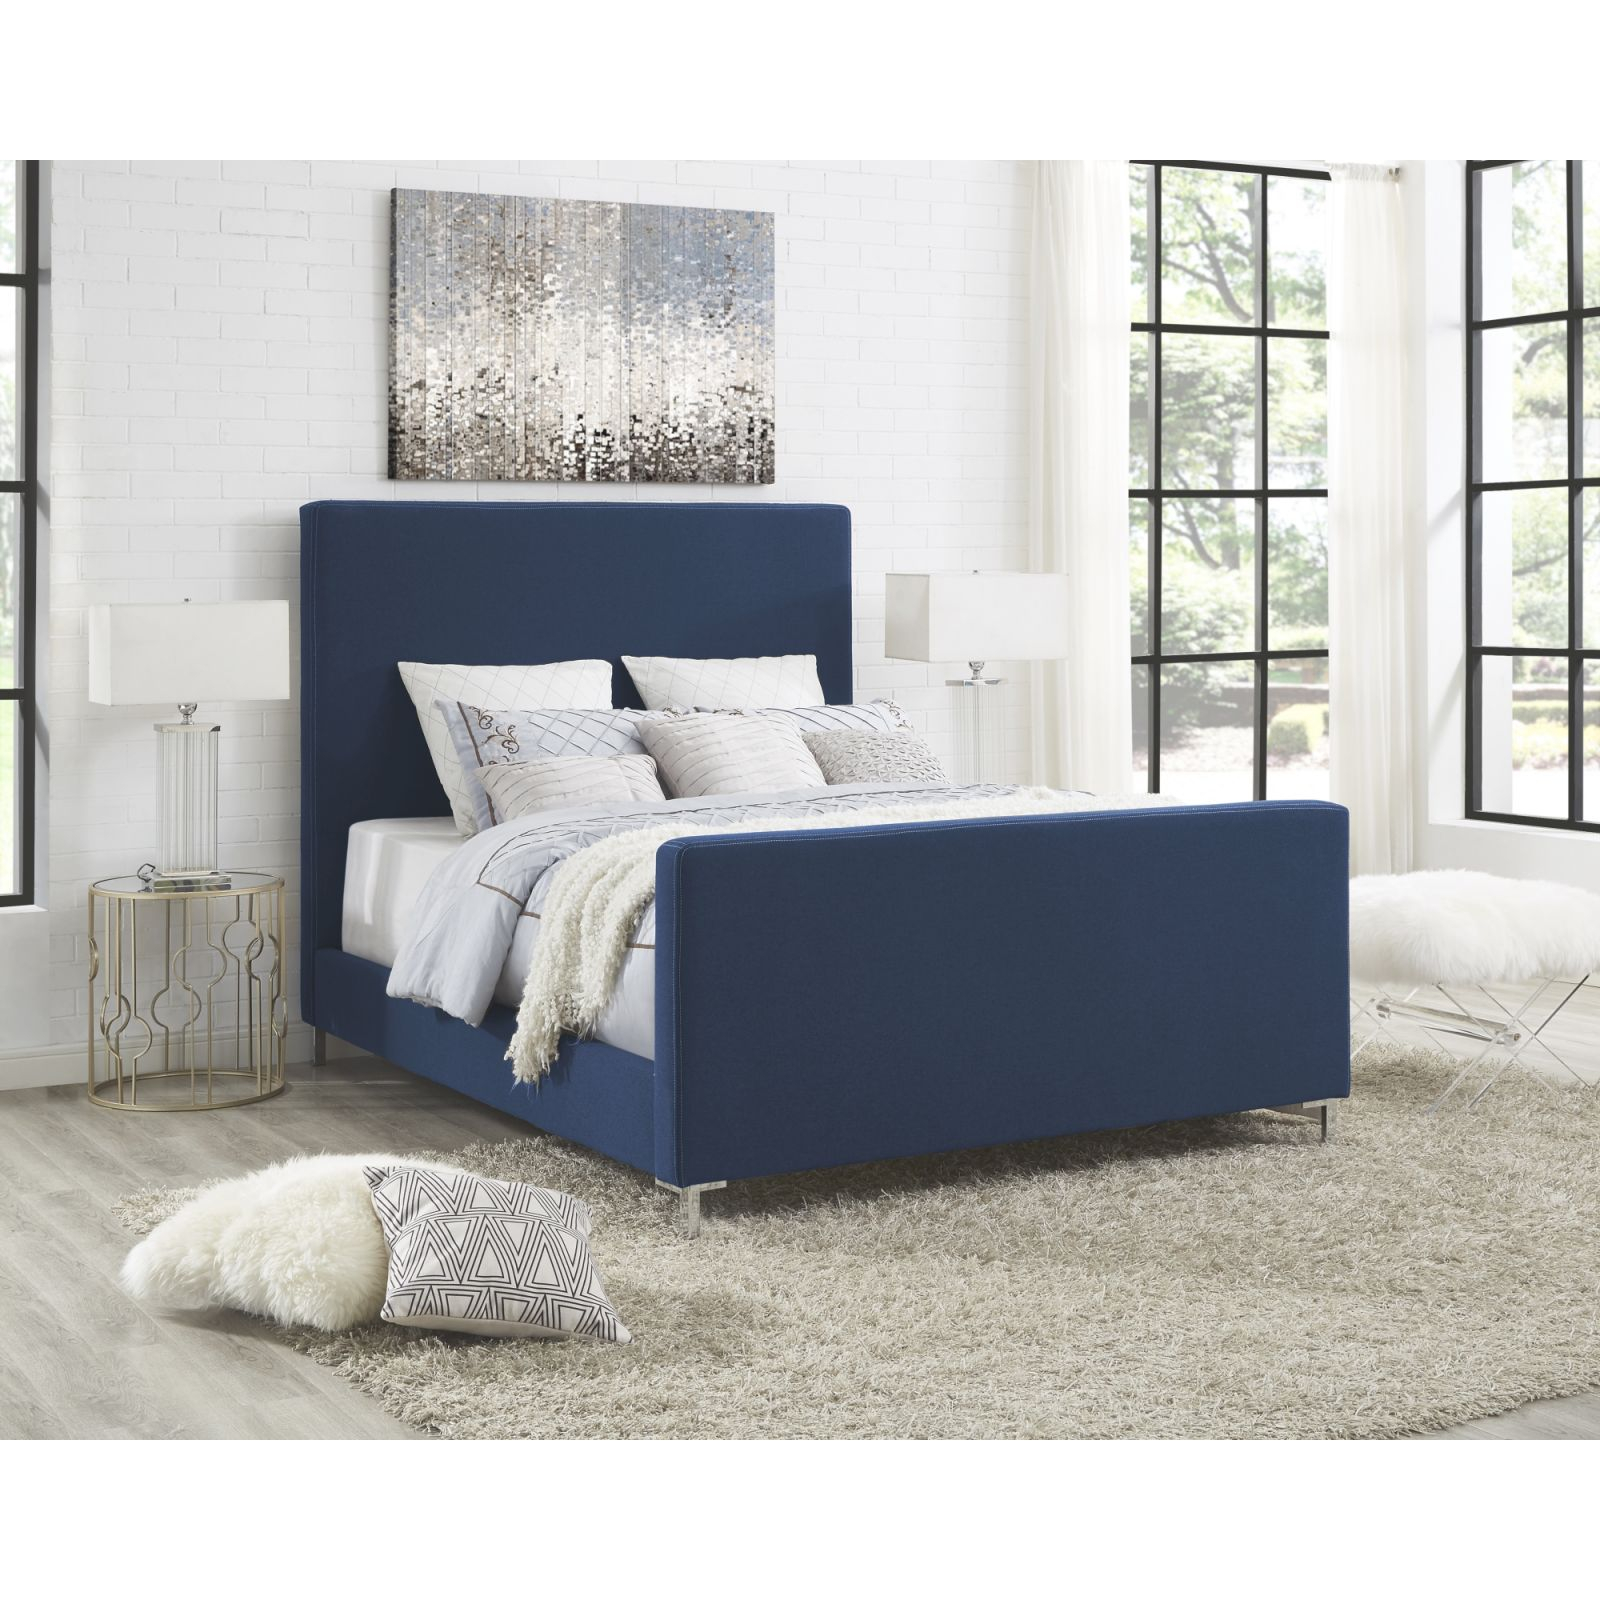 Details About Linen Platform Bed Frame Headboard Queen Or King Size Bedroom  Wood Upholstered pertaining to Best of King Bed Frame With Headboard